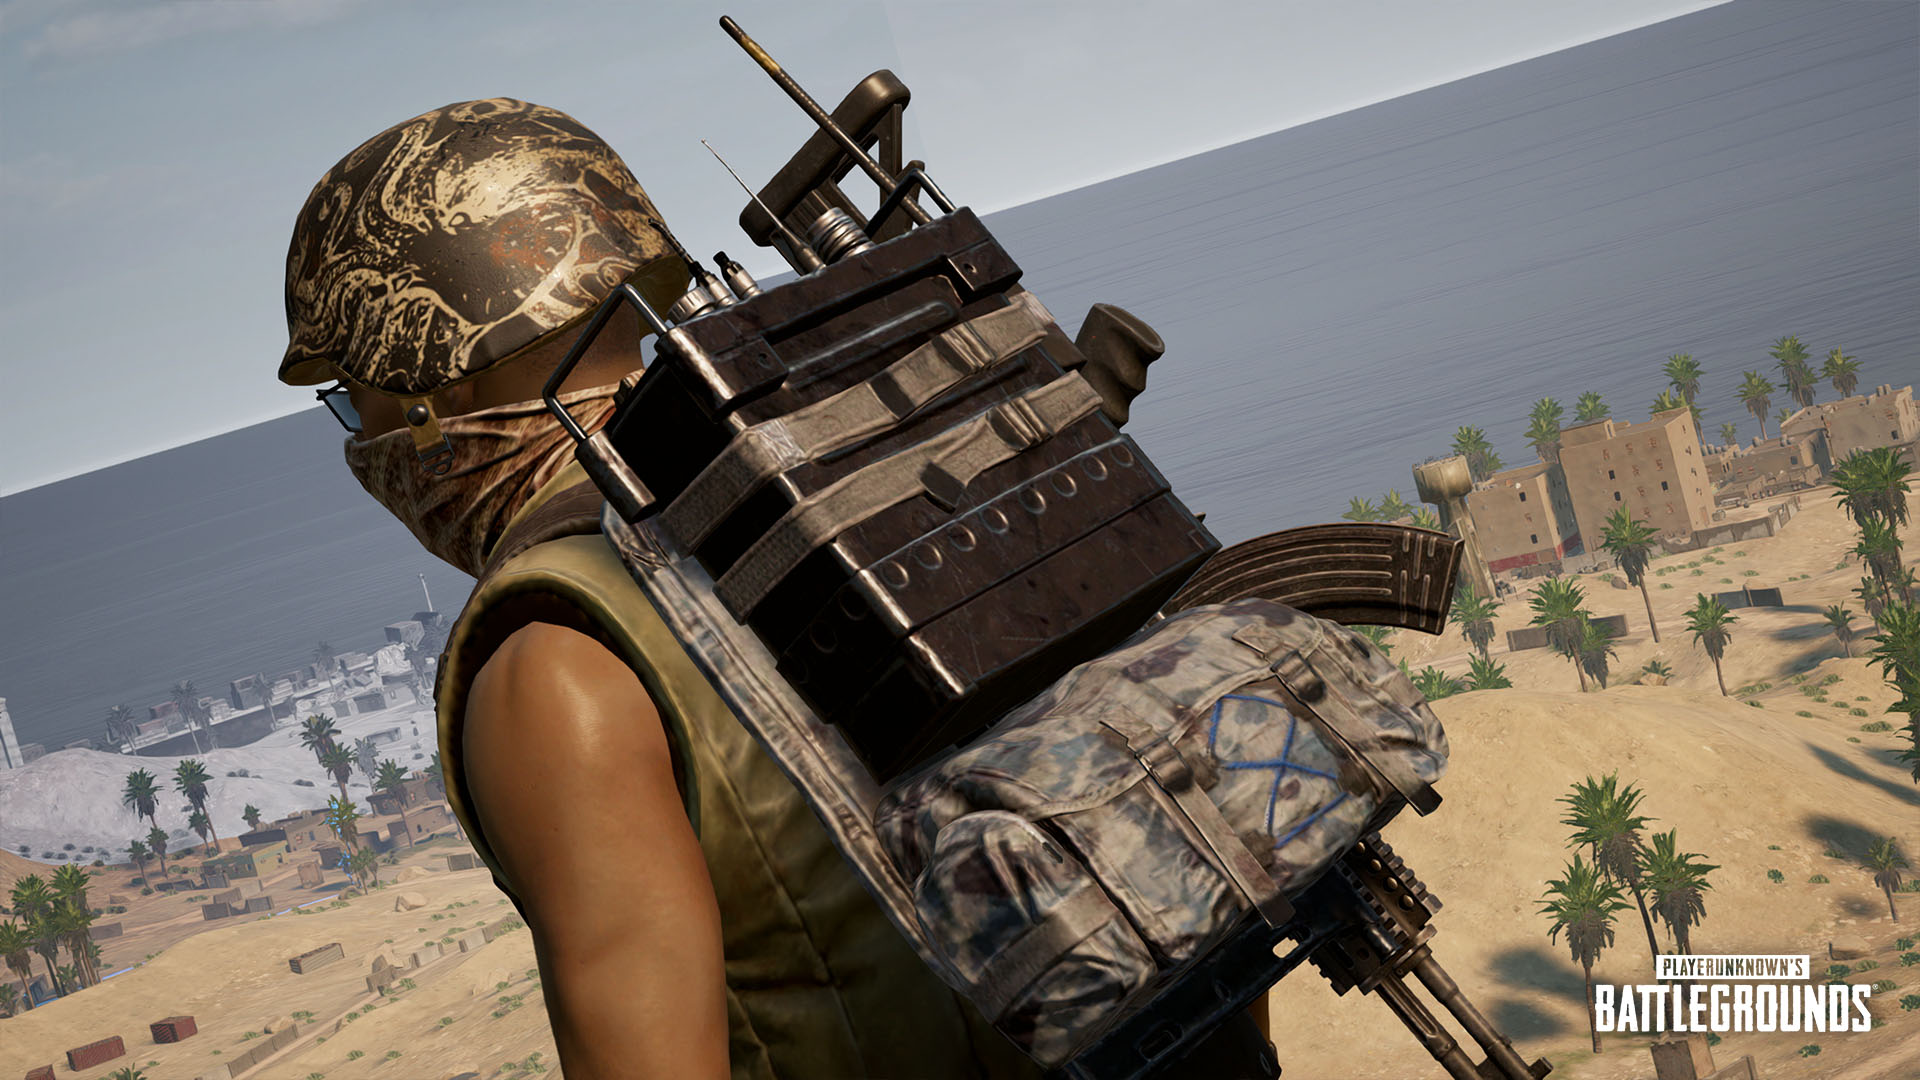 PUBG-update-8.3-sees-new-ferries-and-Jammer-Pack-additions-1.jpg